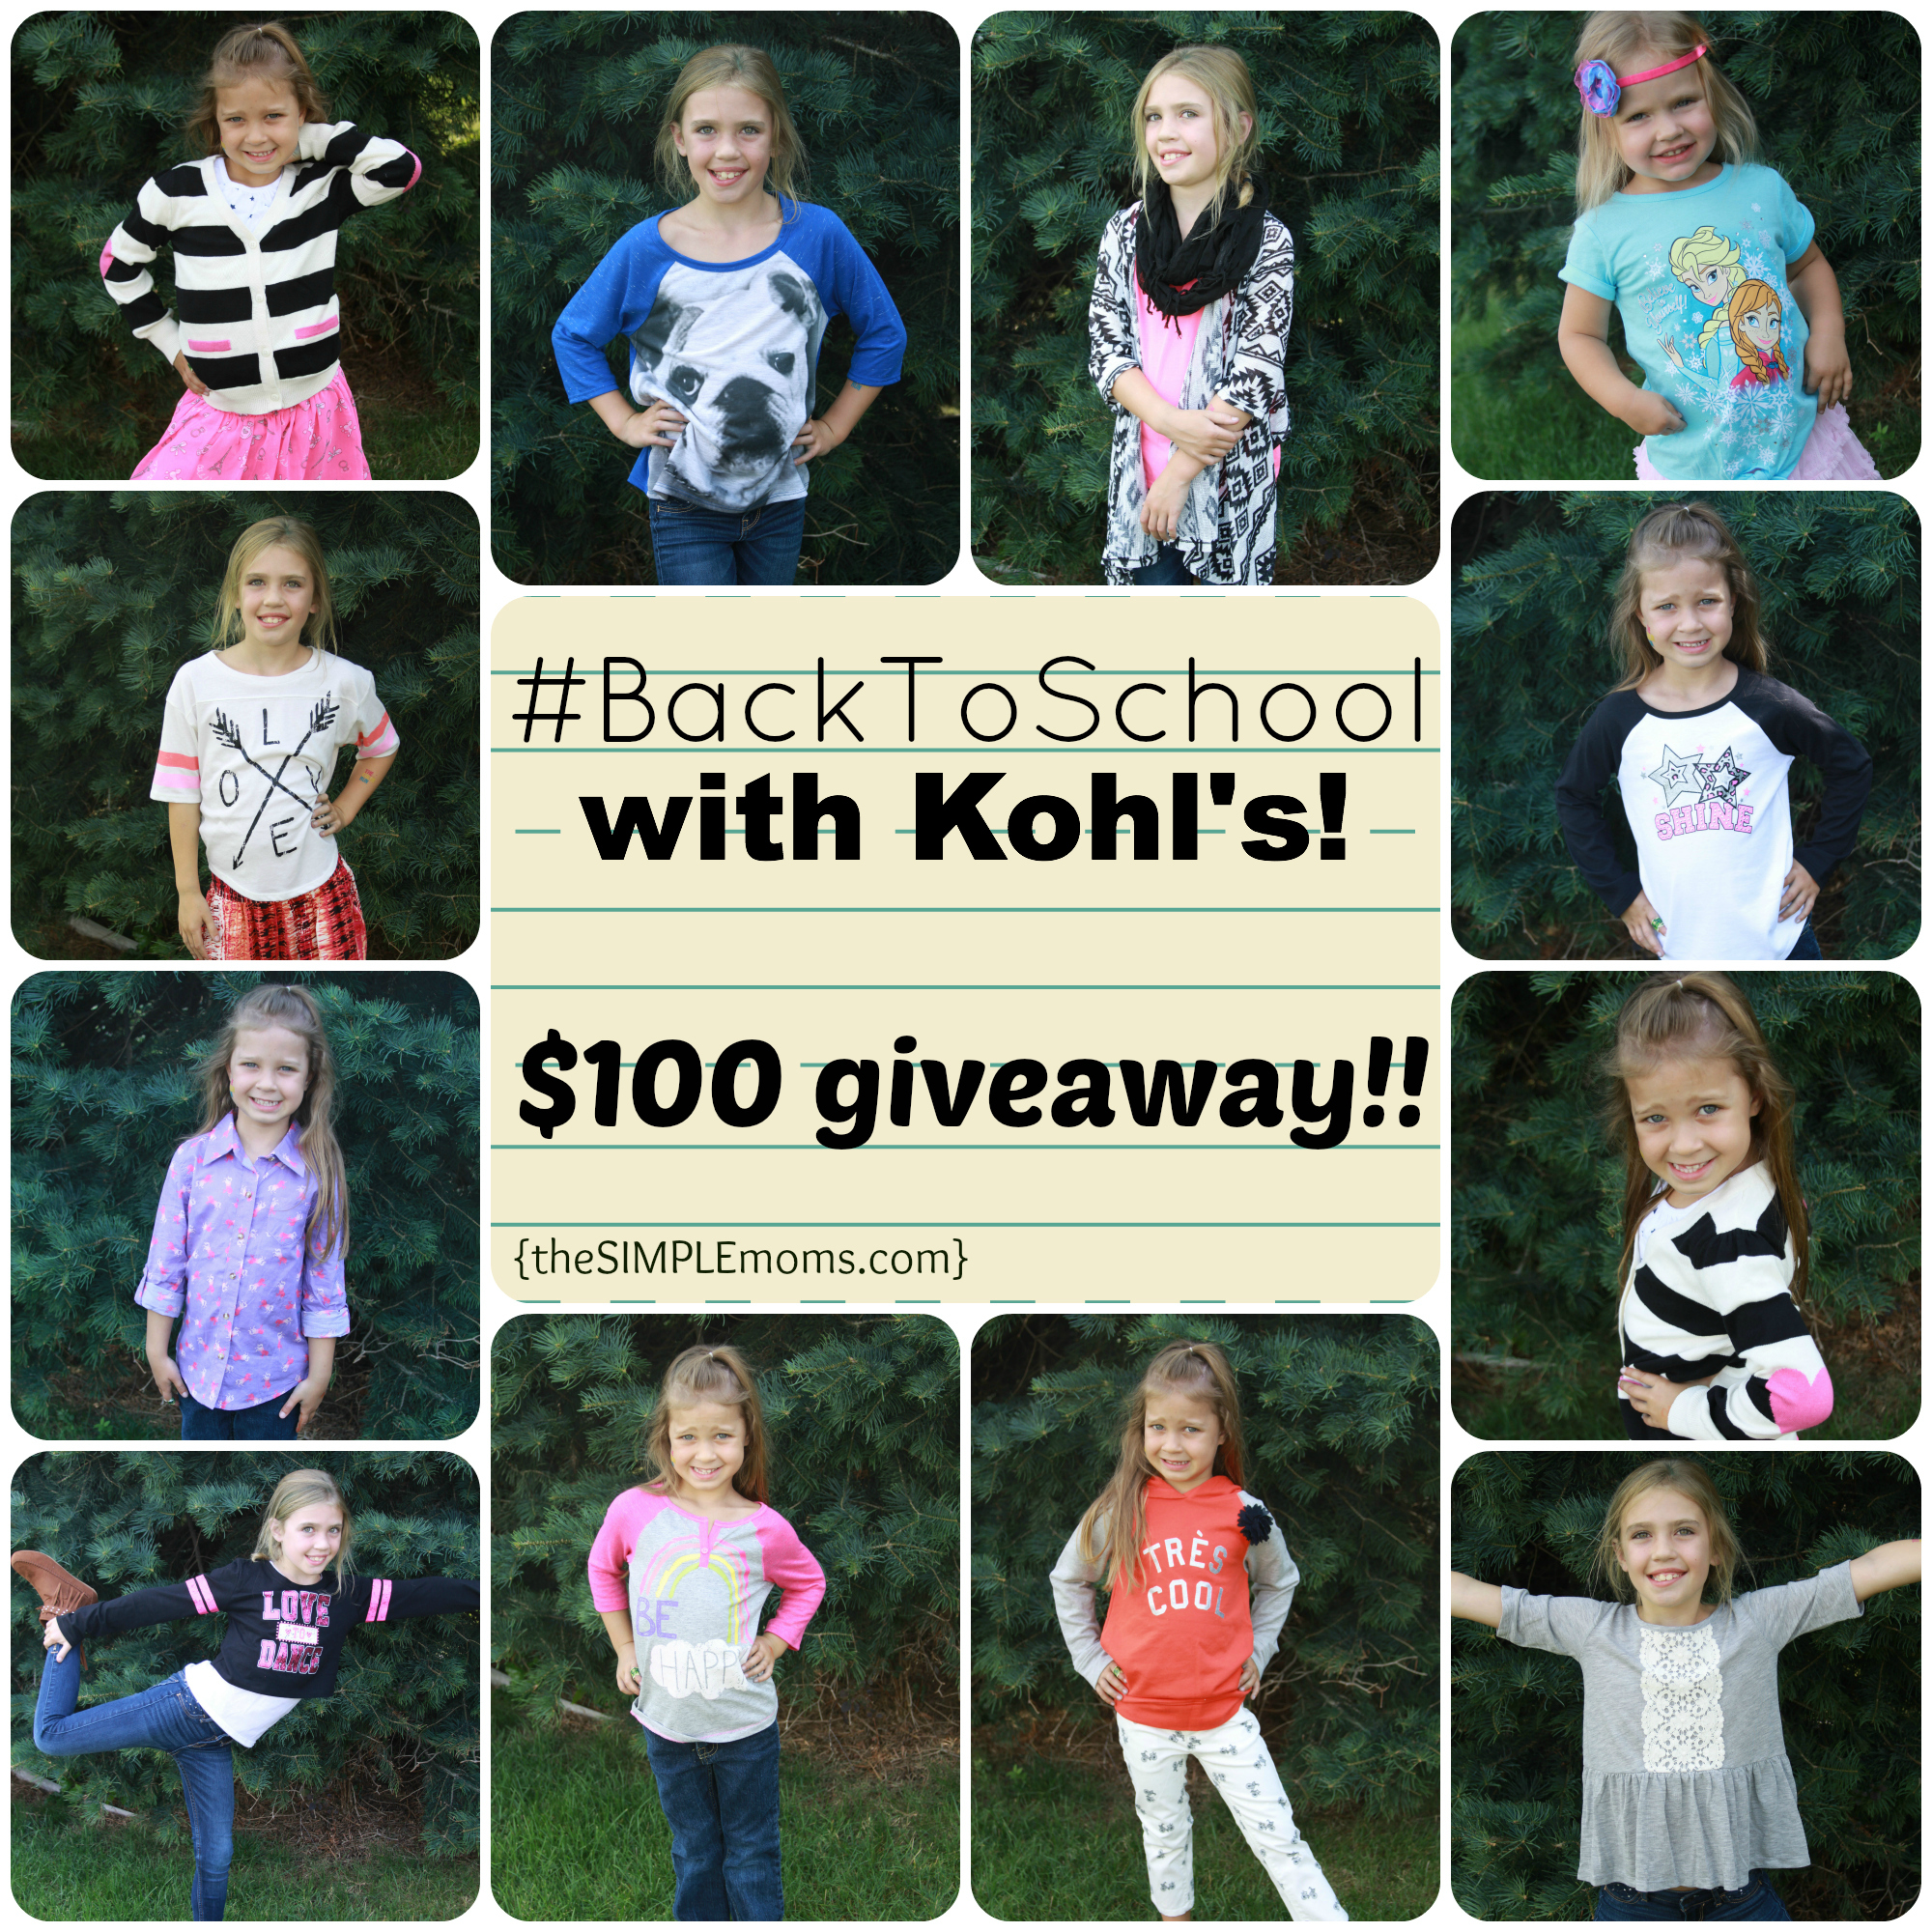 Back to School with Kohls 2014